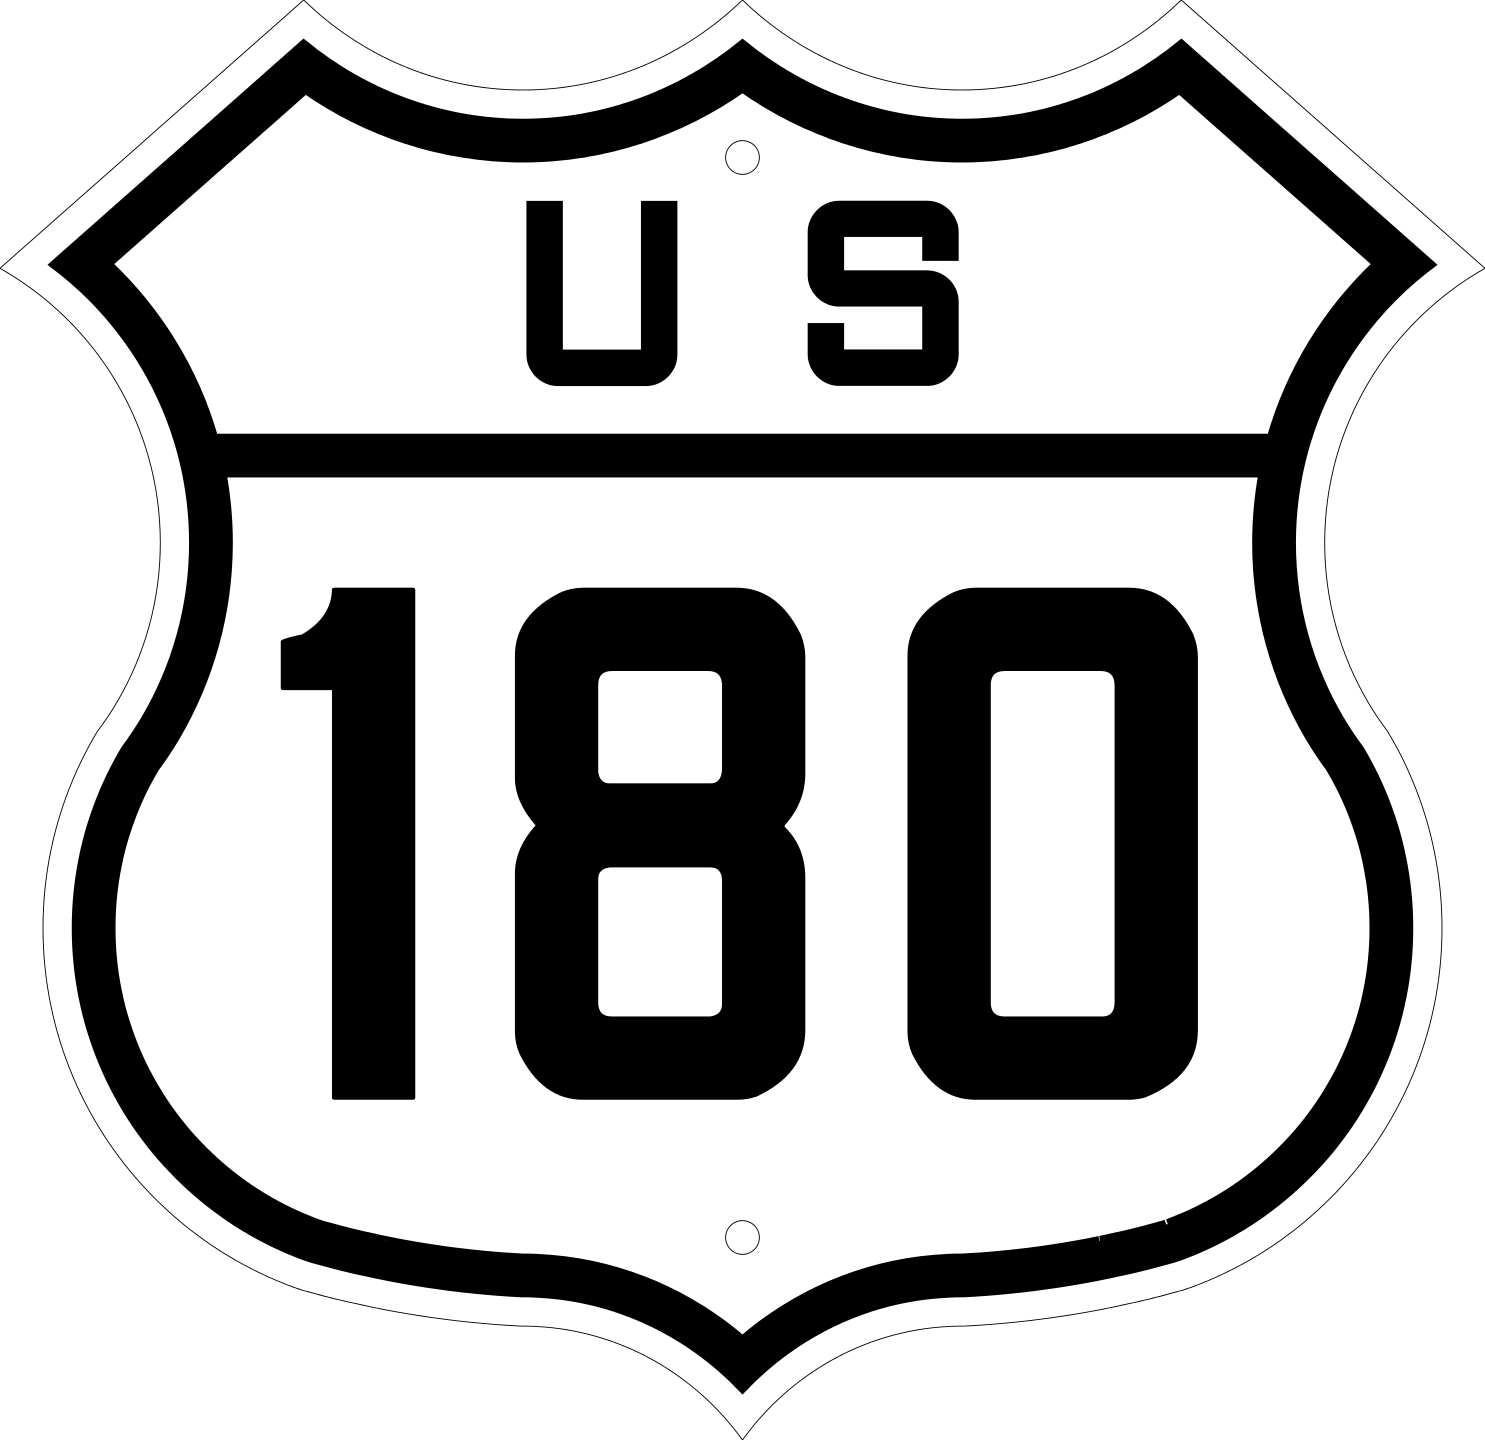 1926 number clipart.